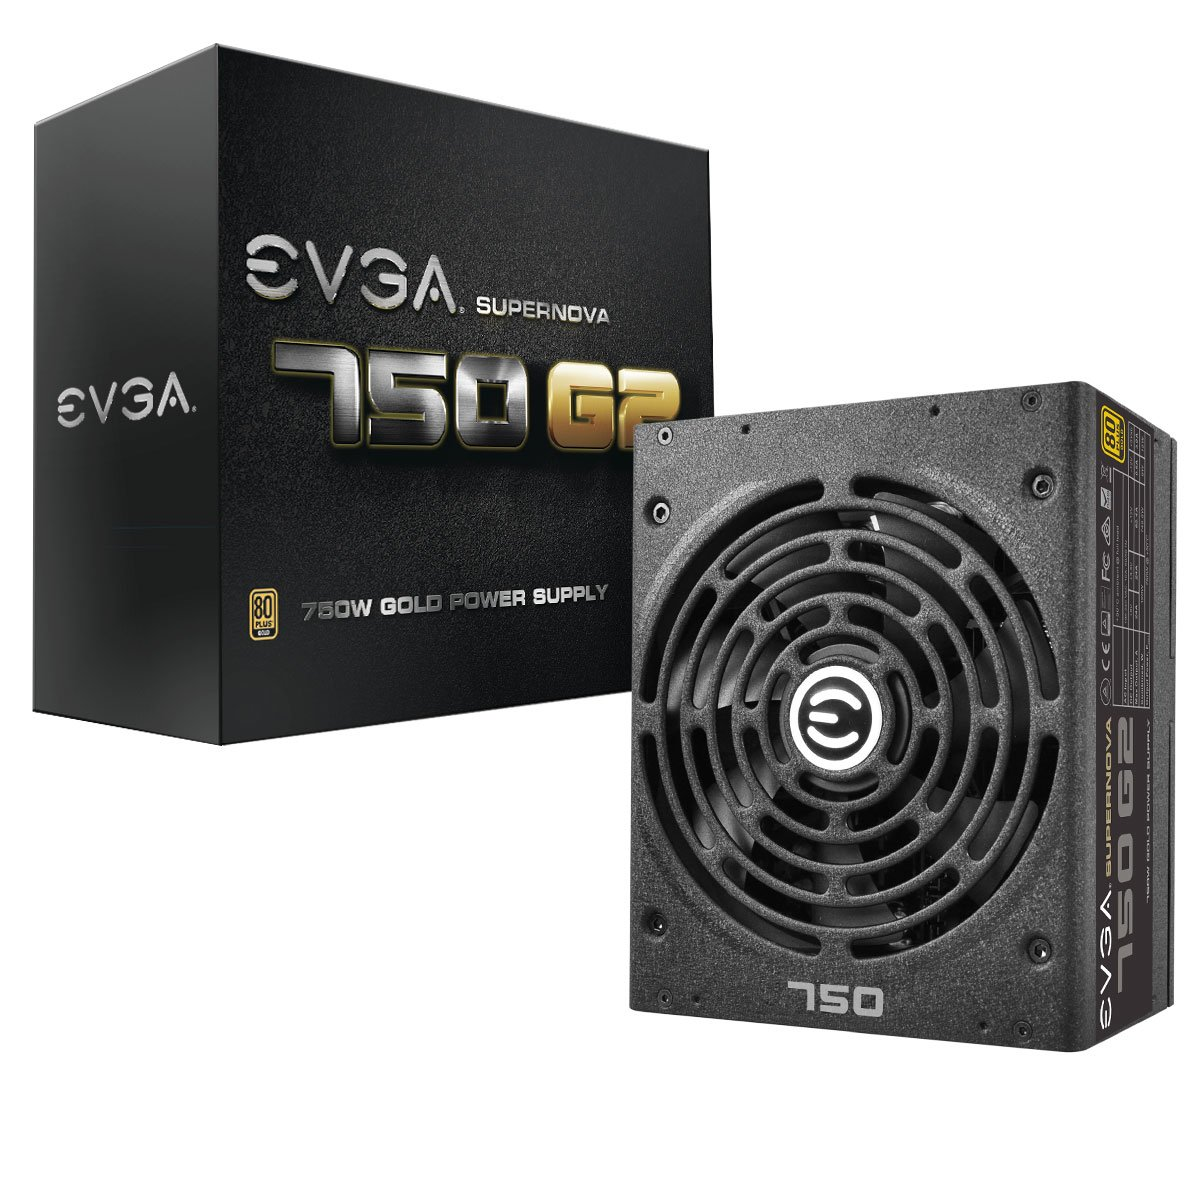 EVGA SuperNOVA 750 G2, 80+ GOLD 750W, Fully Modular, EVGA ECO Mode, 10 Year Warranty, Includes FREE Power On Self Tester Power Supply 220-G2-0750-XR by EVGA (Image #1)